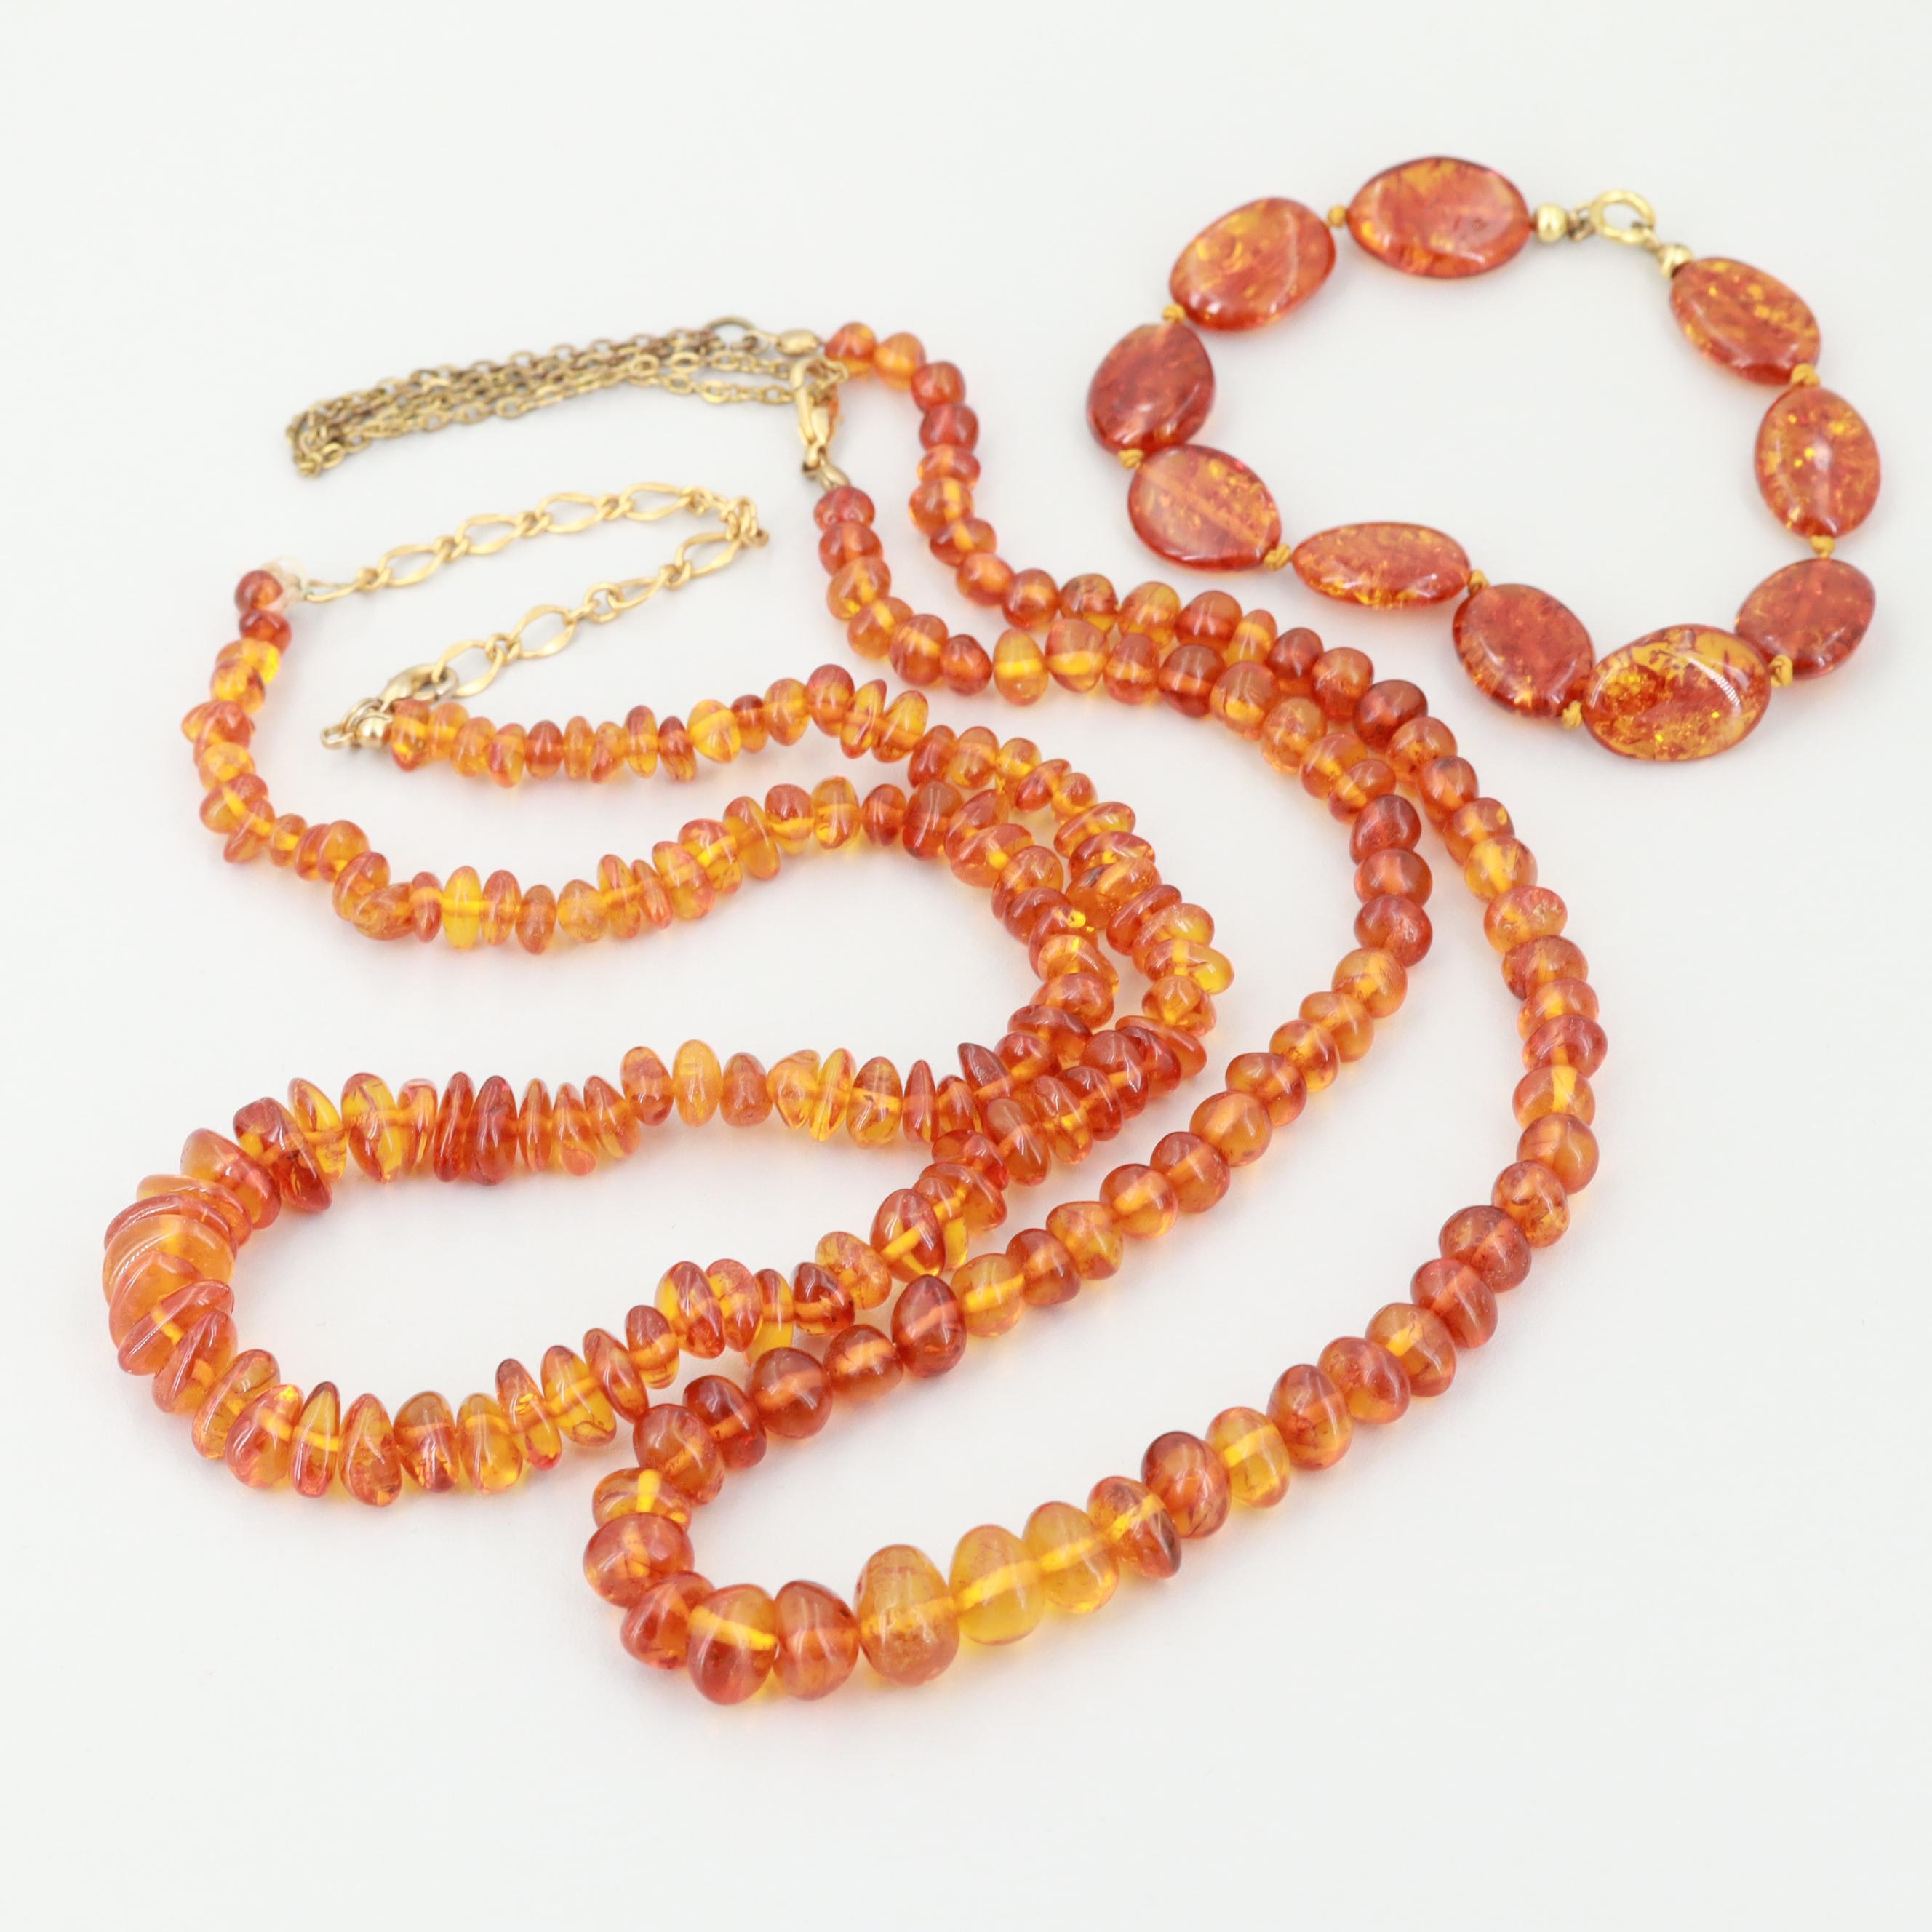 Gold Tone Amber Necklaces and Bracelet